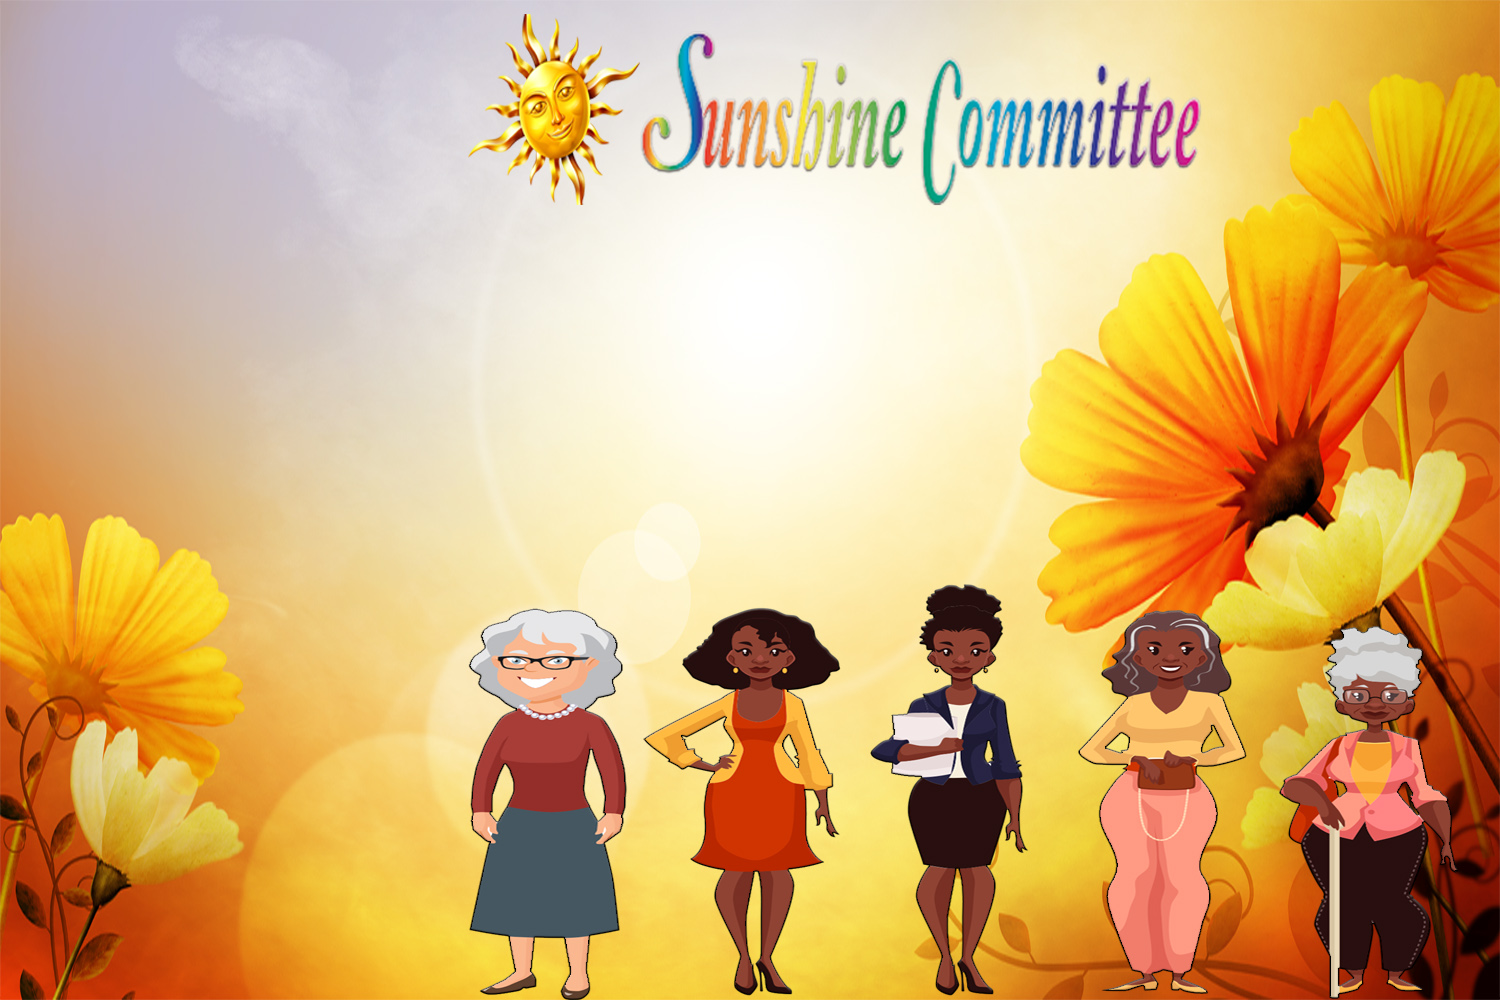 Sunshine Committee Webpage 2018 for Squarespace.jpg